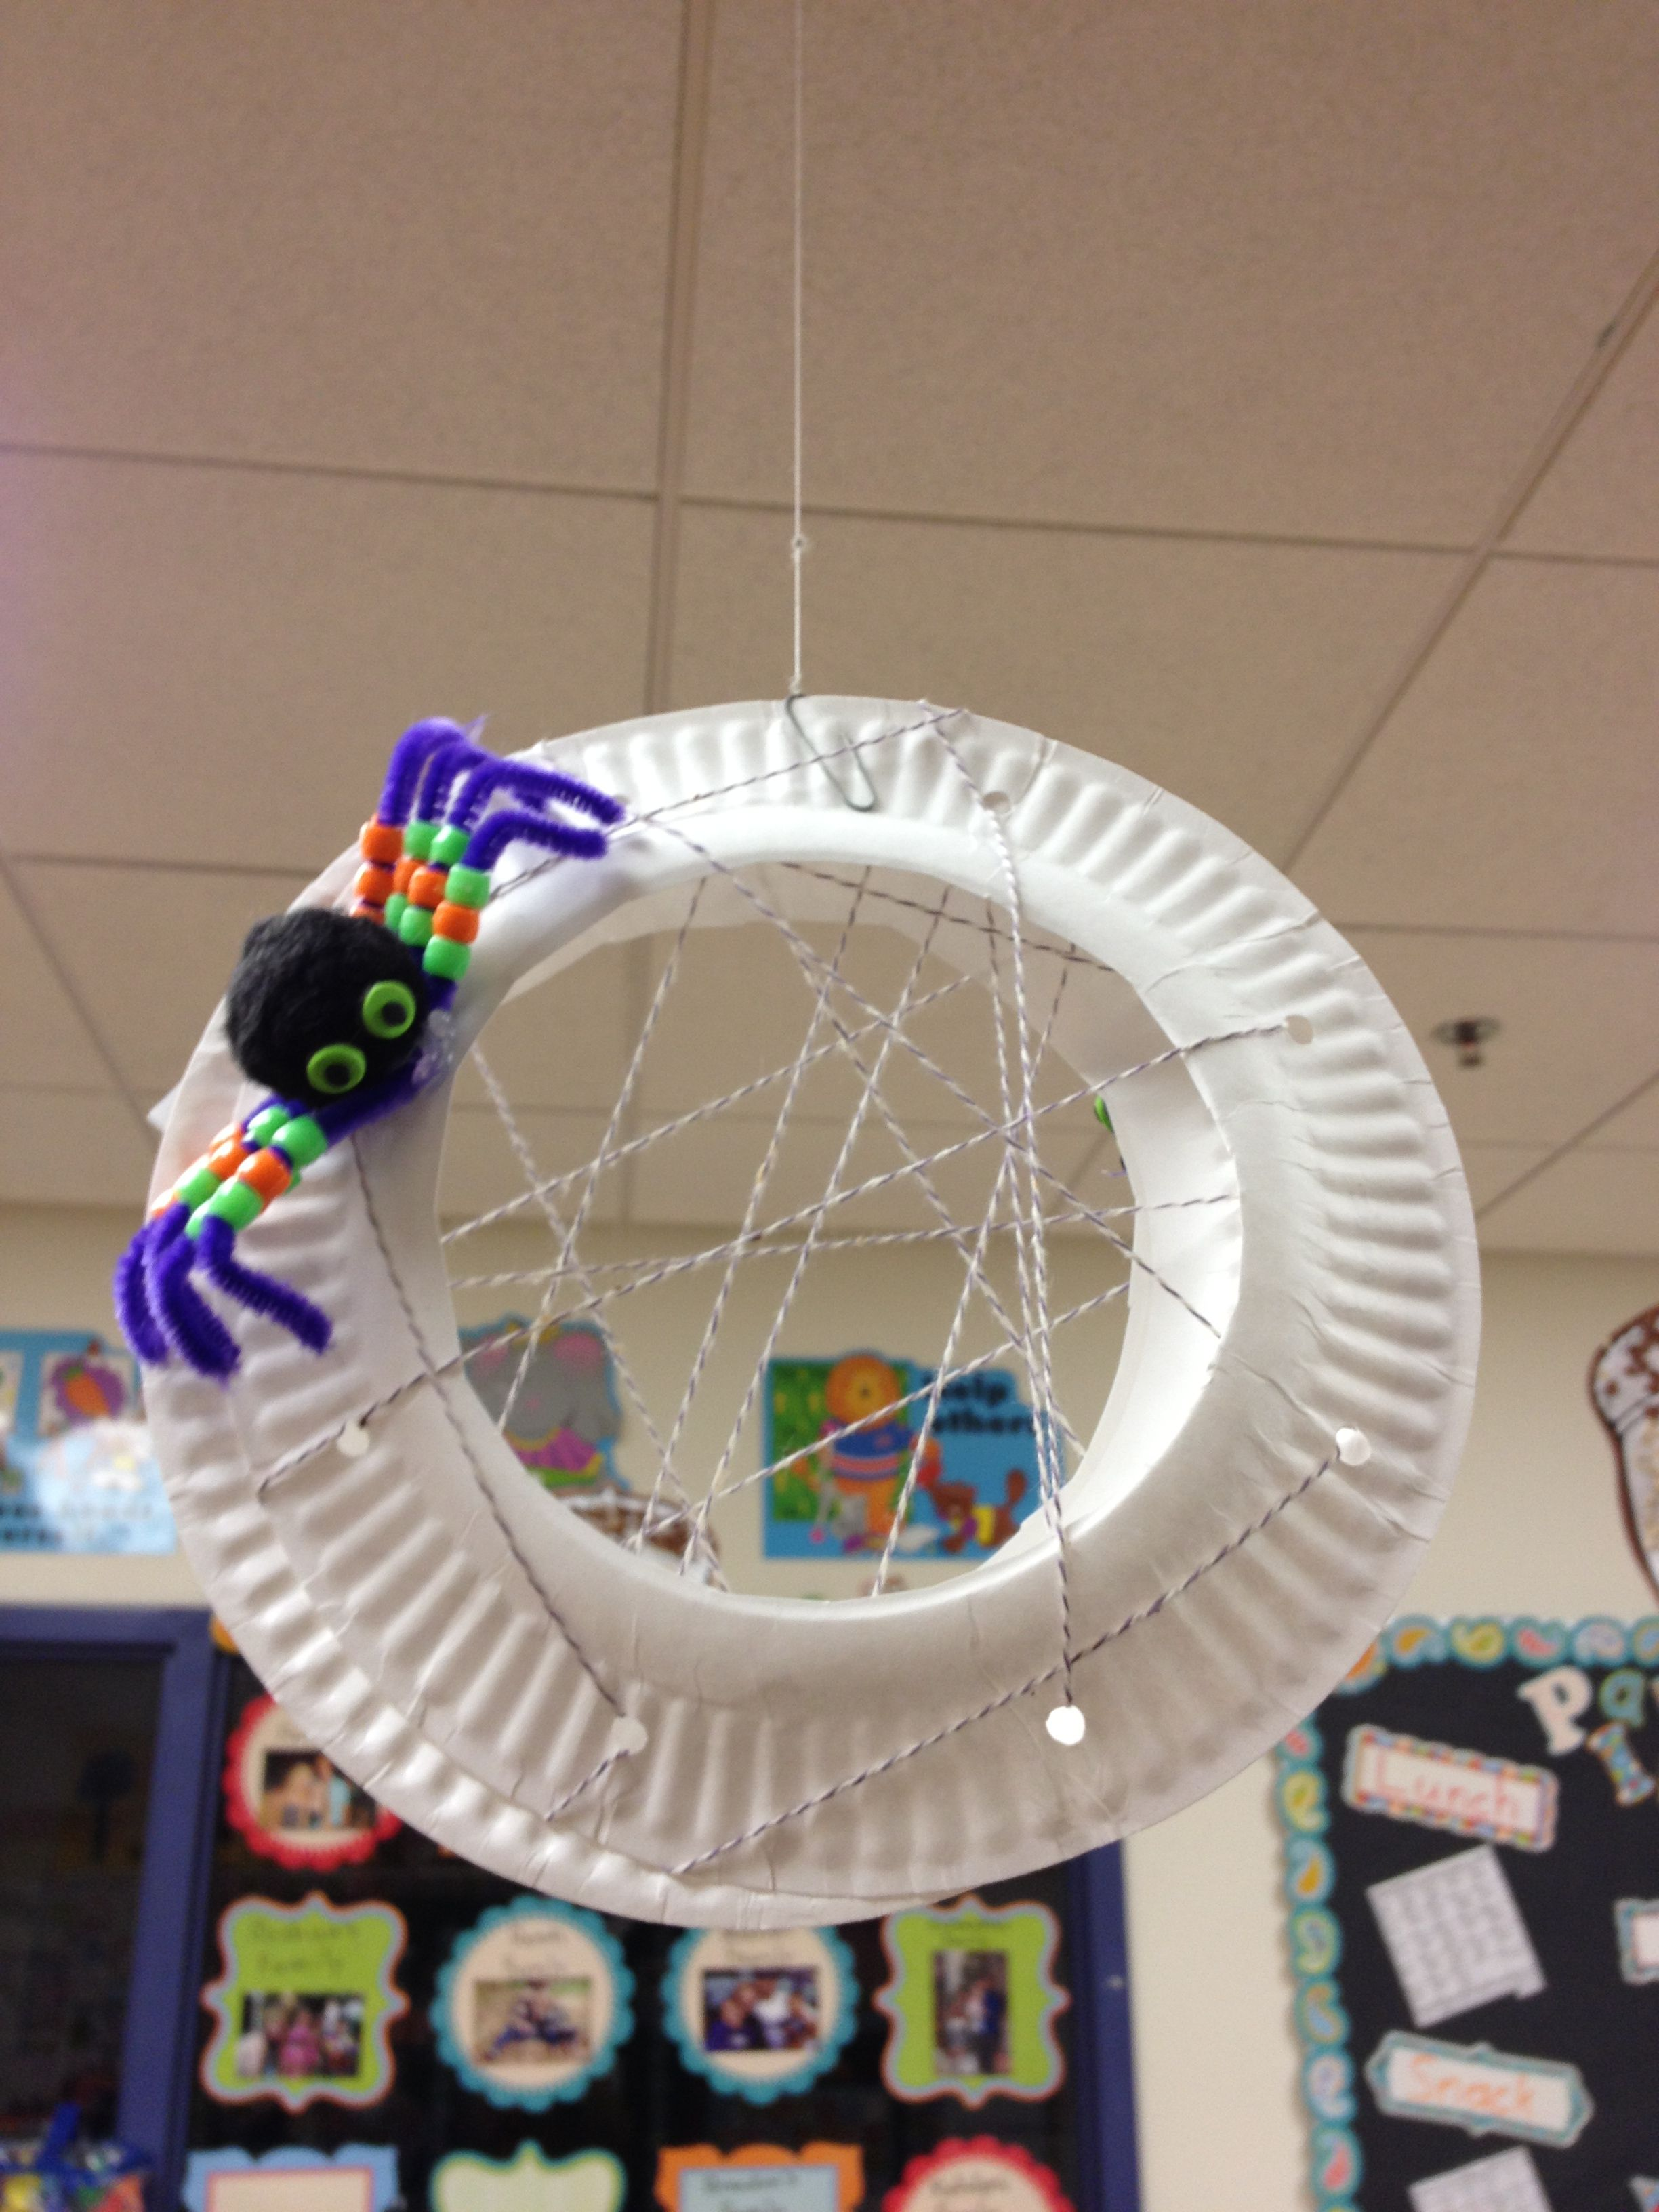 Fine Motor Activity Kids Lace Beads On Pipe Cleaner Legs On Spider And Lace String Through Cut